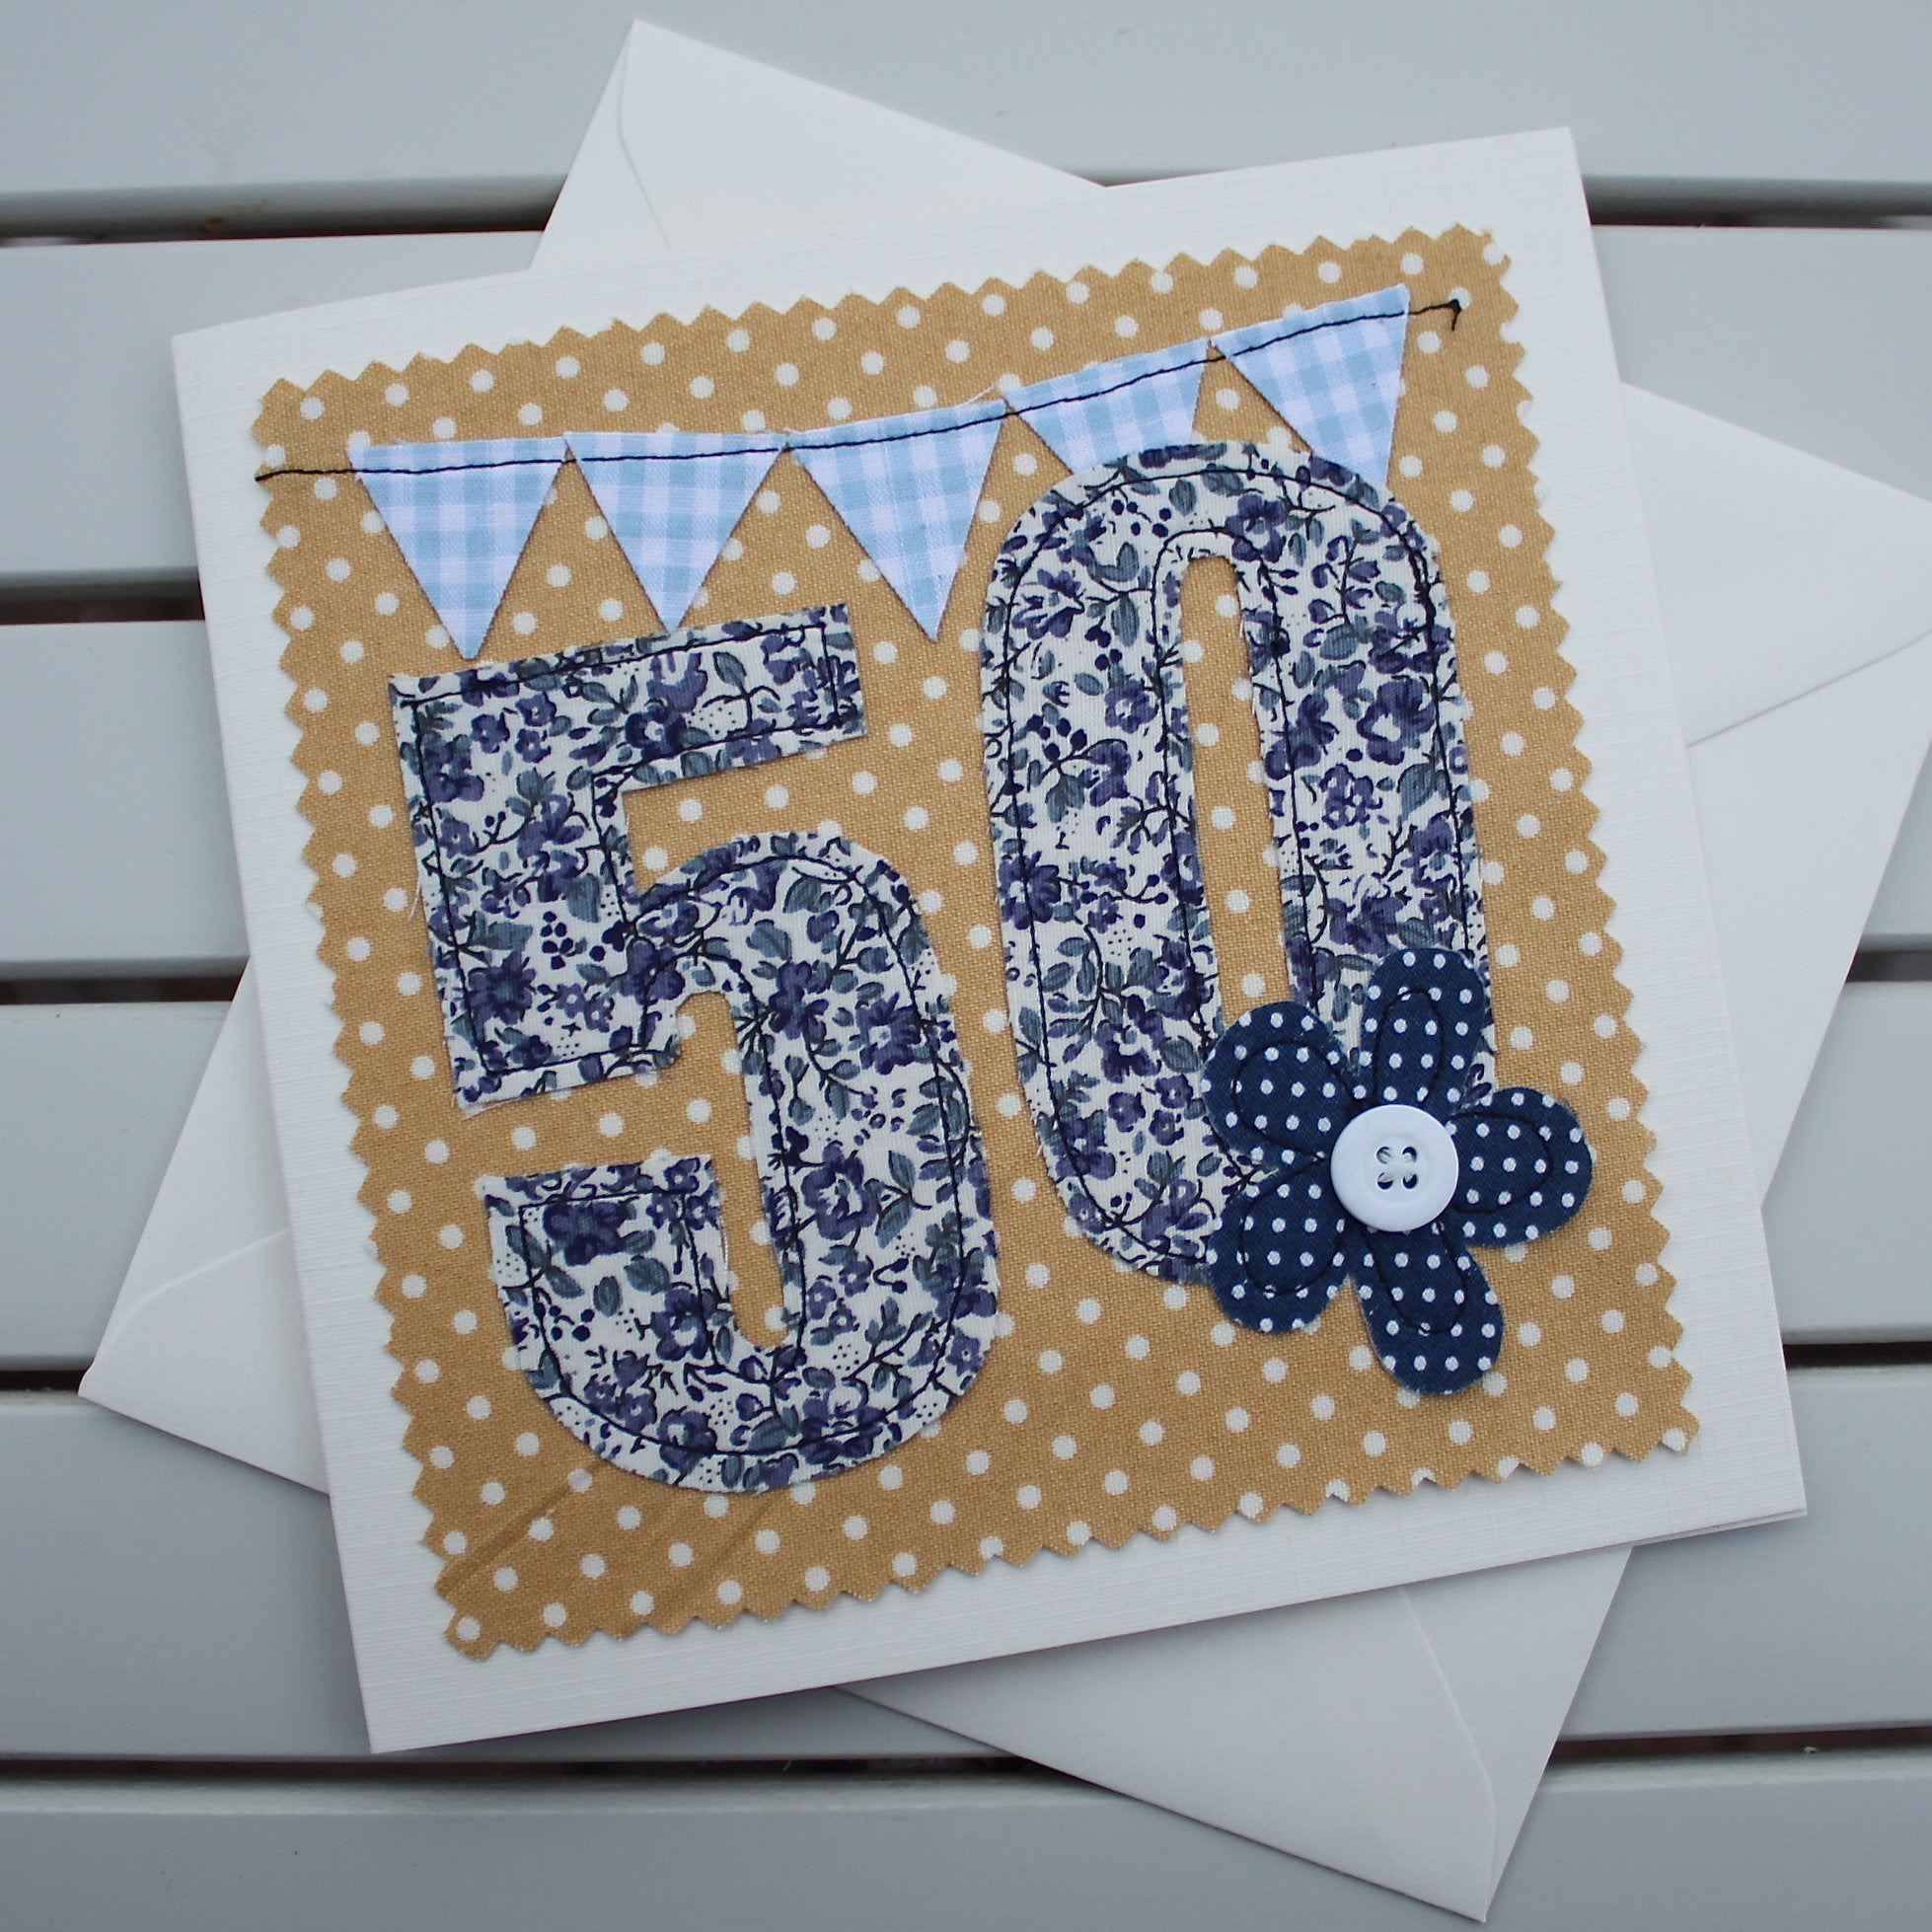 Paper Embroidery Cards Free Patterns 50th Birthday Card Handmade Original Fabric Embroidered Card